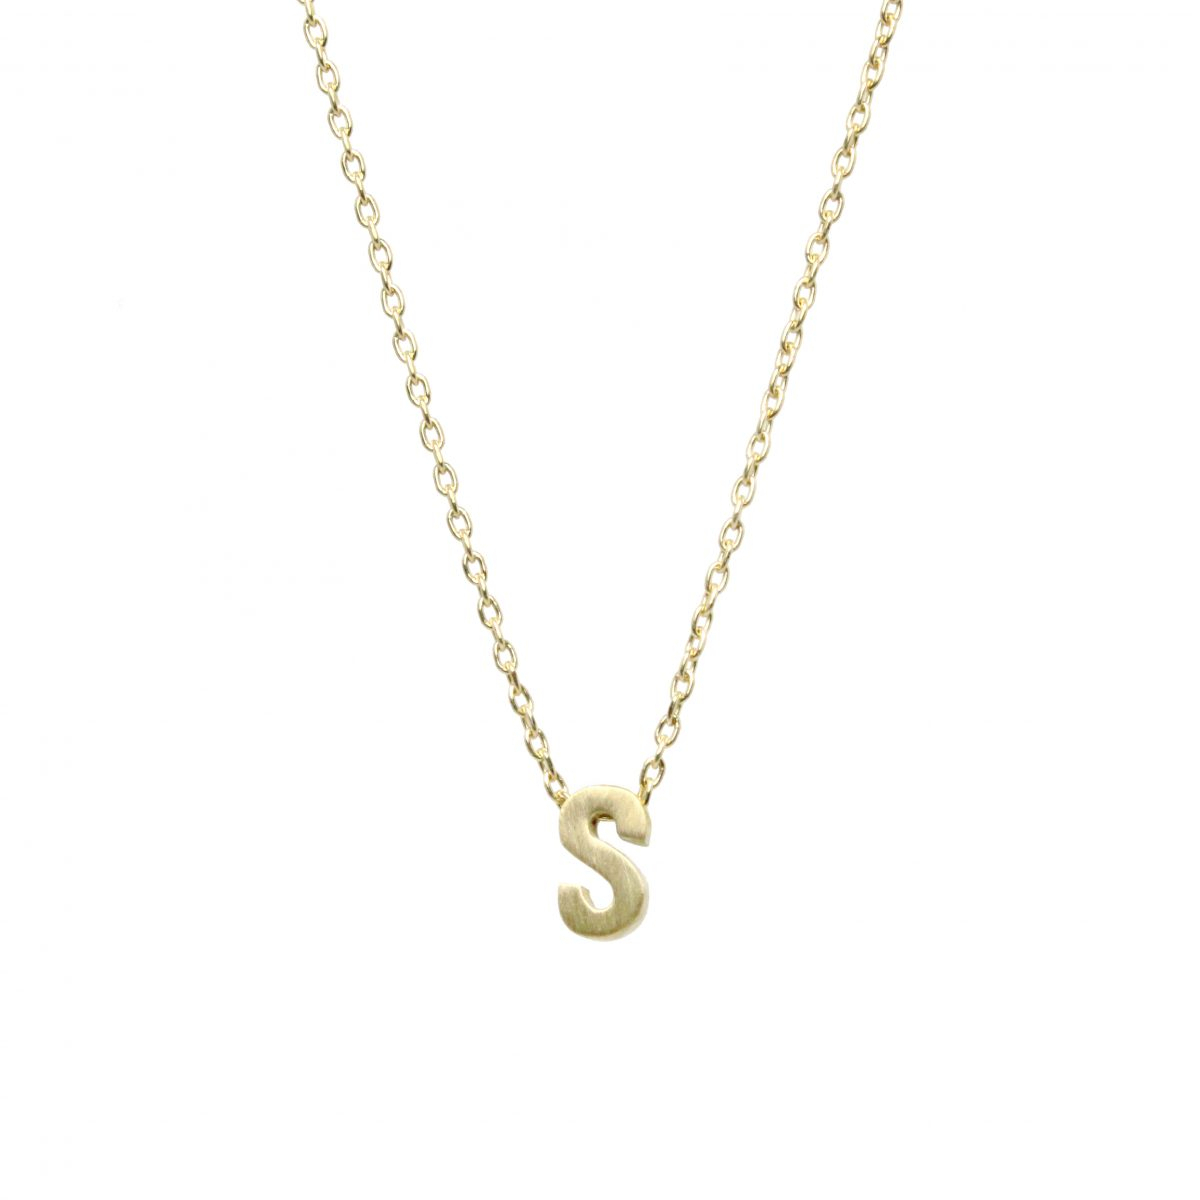 """Micro """"s"""" Initial Necklace With Regard To Latest Classic Cable Chain Necklaces (View 18 of 25)"""